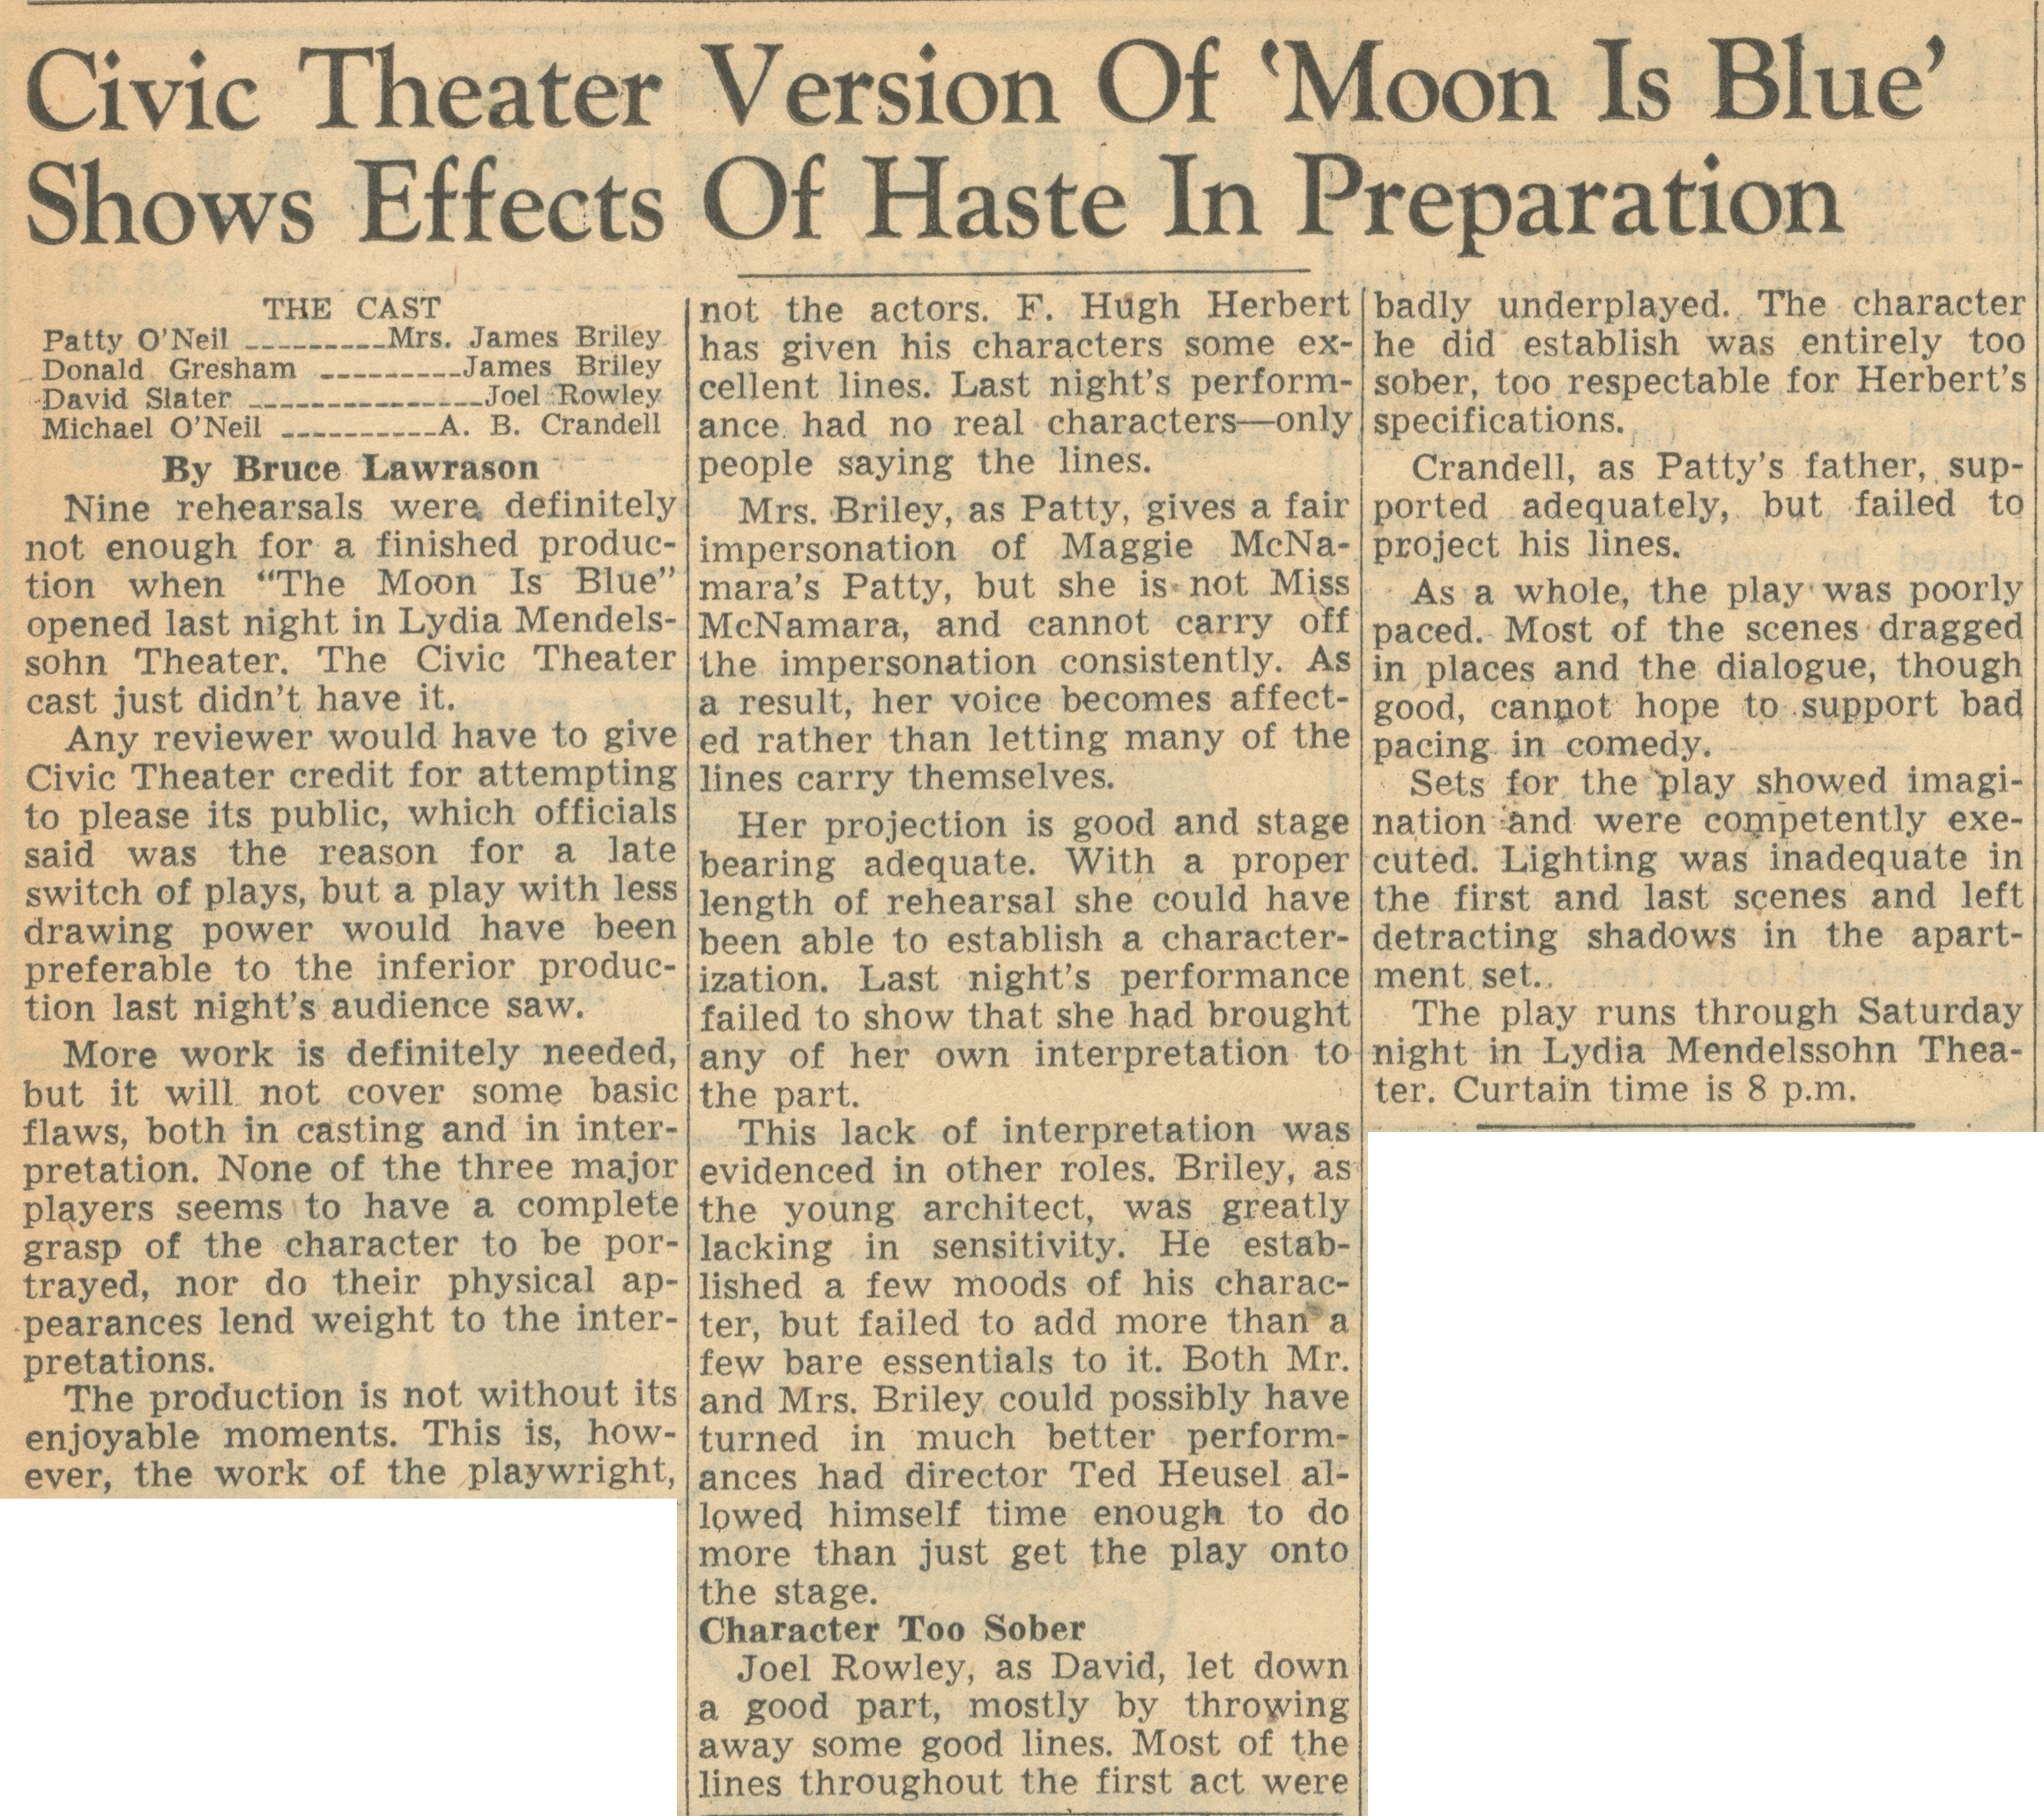 Civic Theater Version Of 'Moon Is Blue' Shows Effects Of Haste In Preparation image